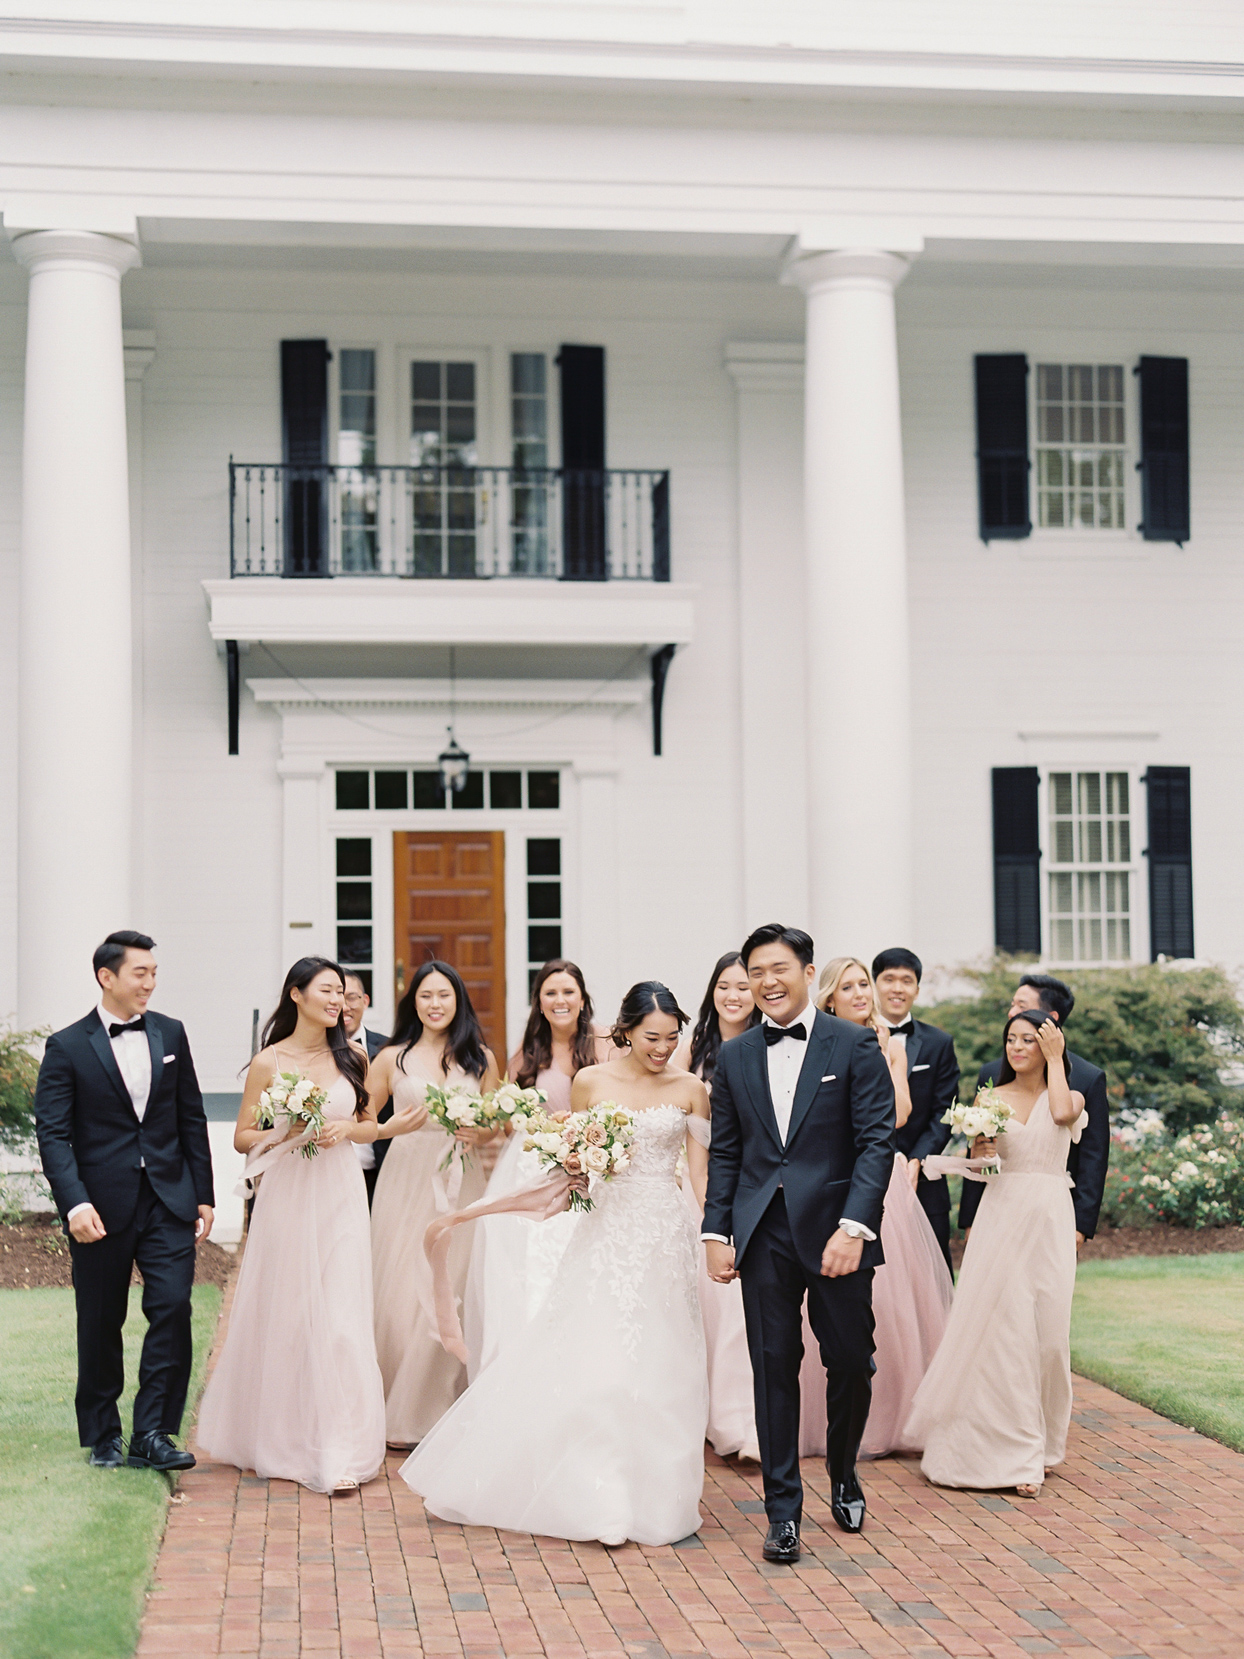 bridal party in blush and black walking in front of house